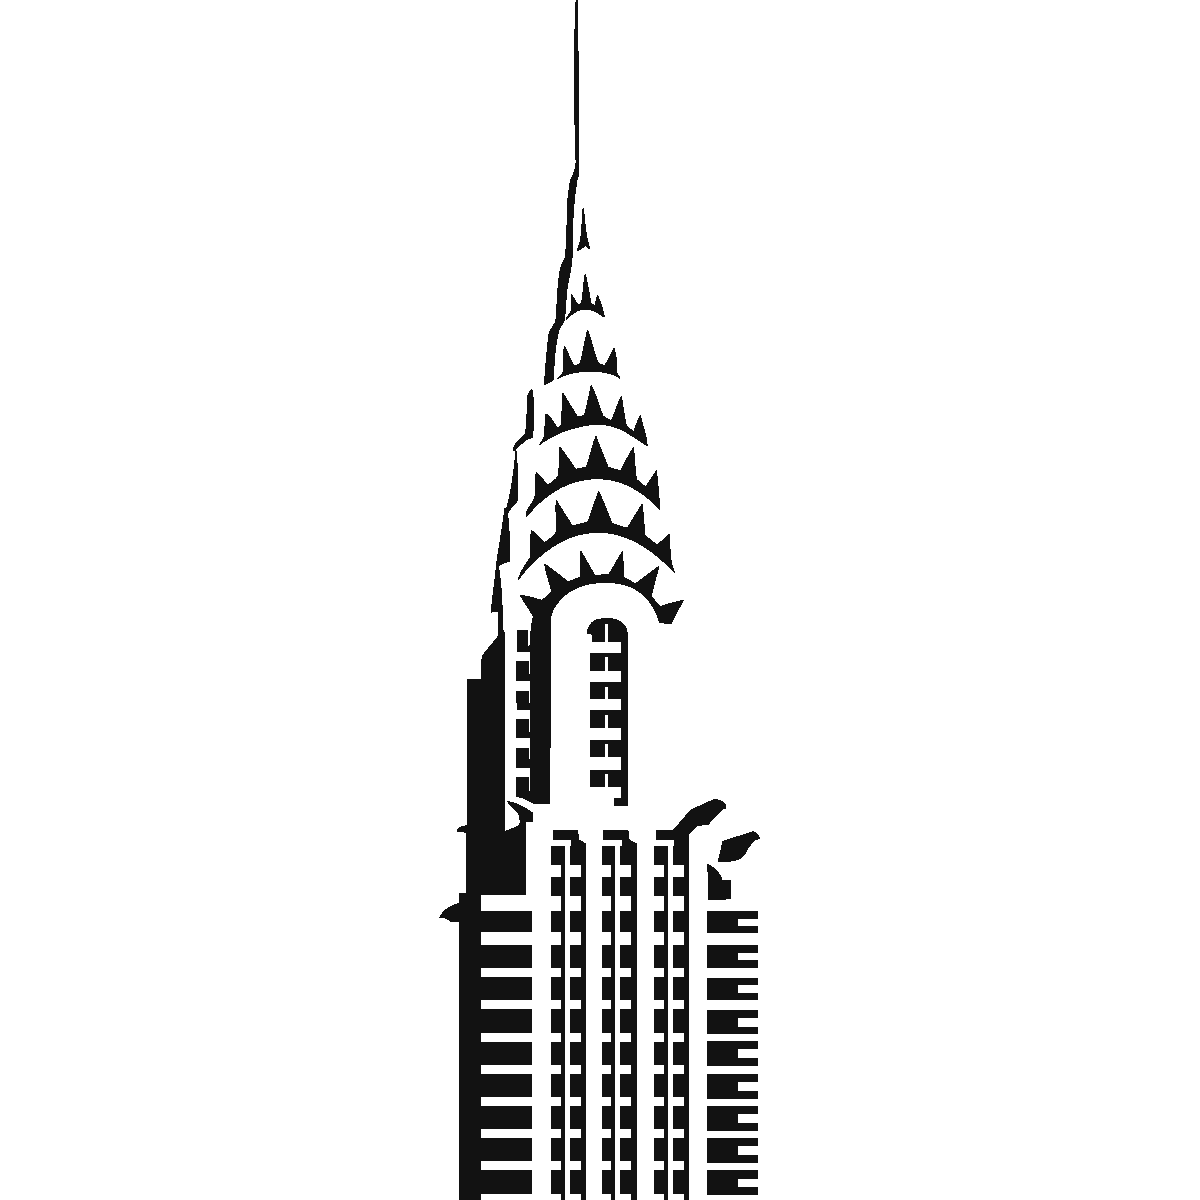 Houston drawing skyscraper. Chrysler building google search